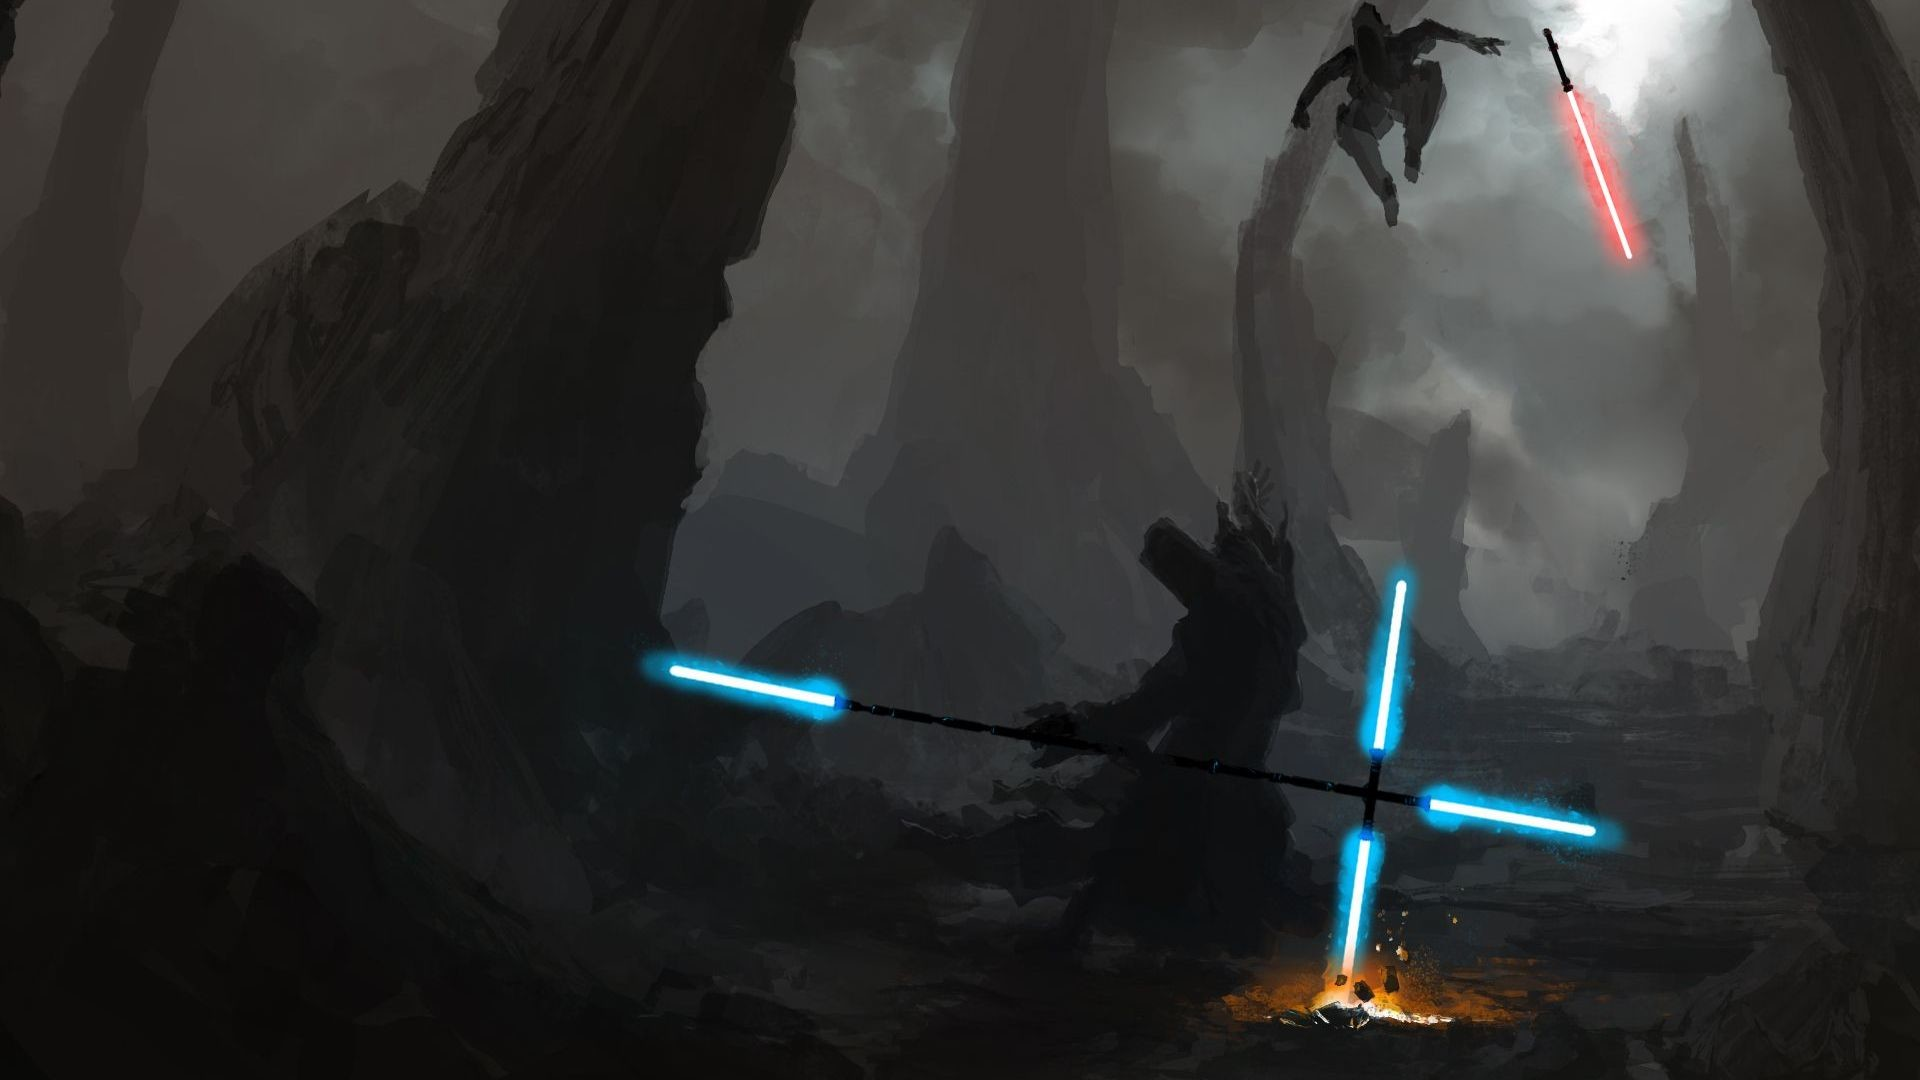 1920x1080 star-wars-lightsaber-battle-artistic-hd-wallpaper--2313.jpg  (1920×1080) | #STAR WARS | Pinterest | Character concept